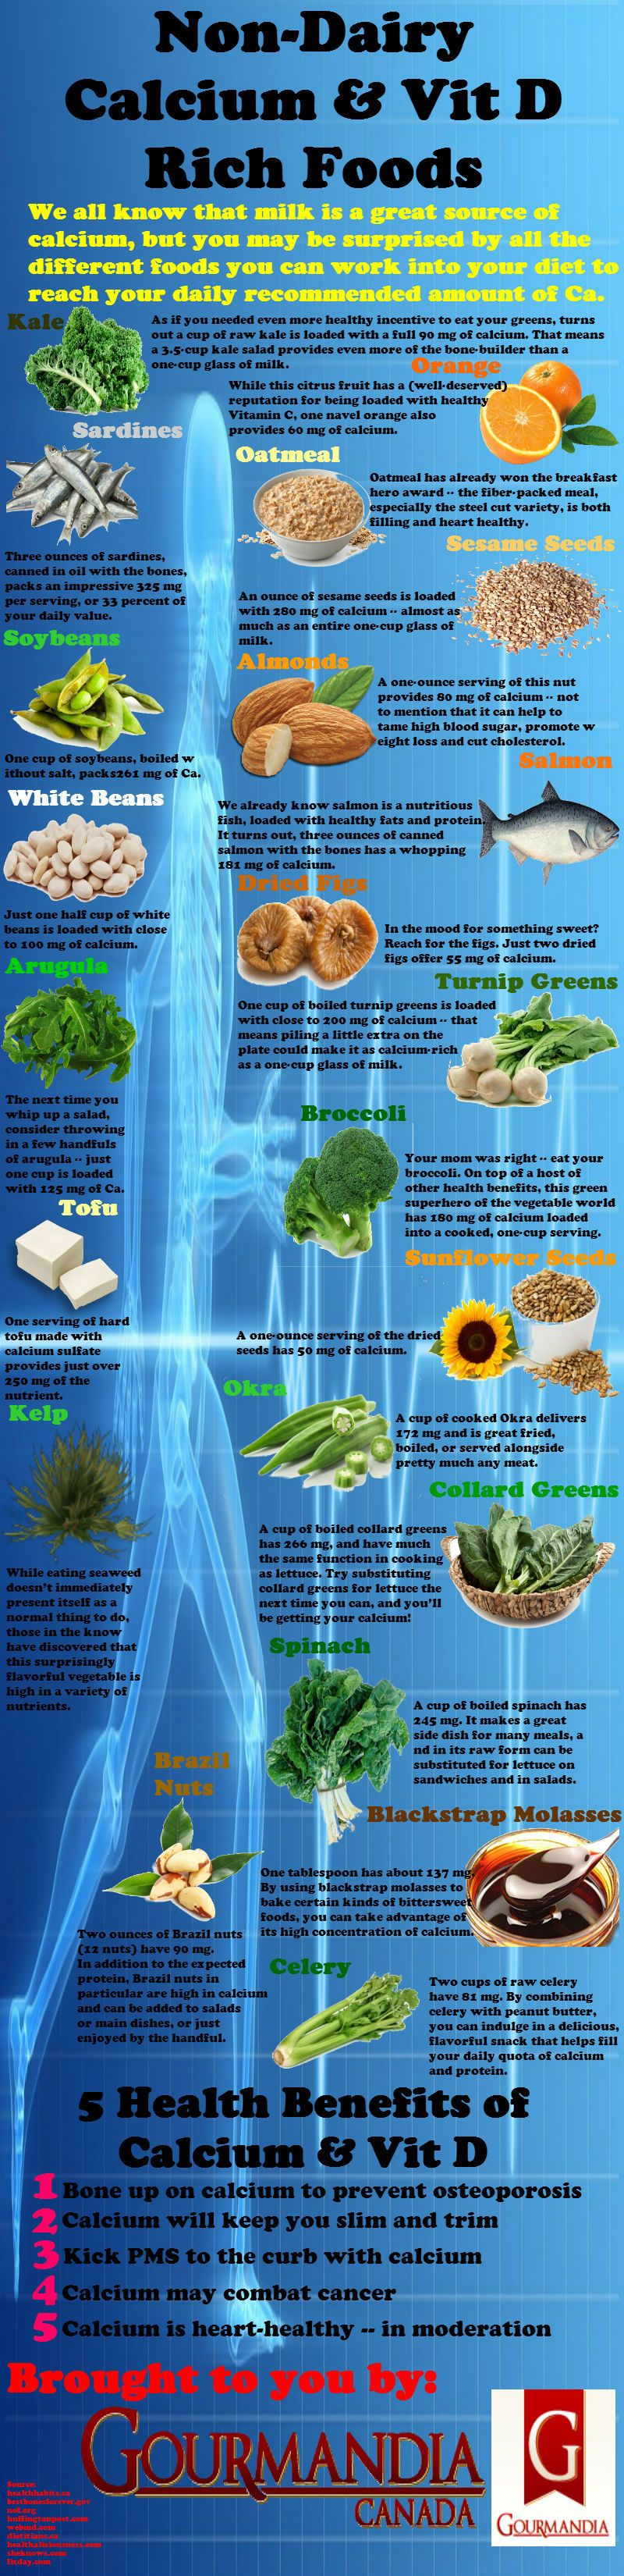 When most people think of foods high in calcium, they